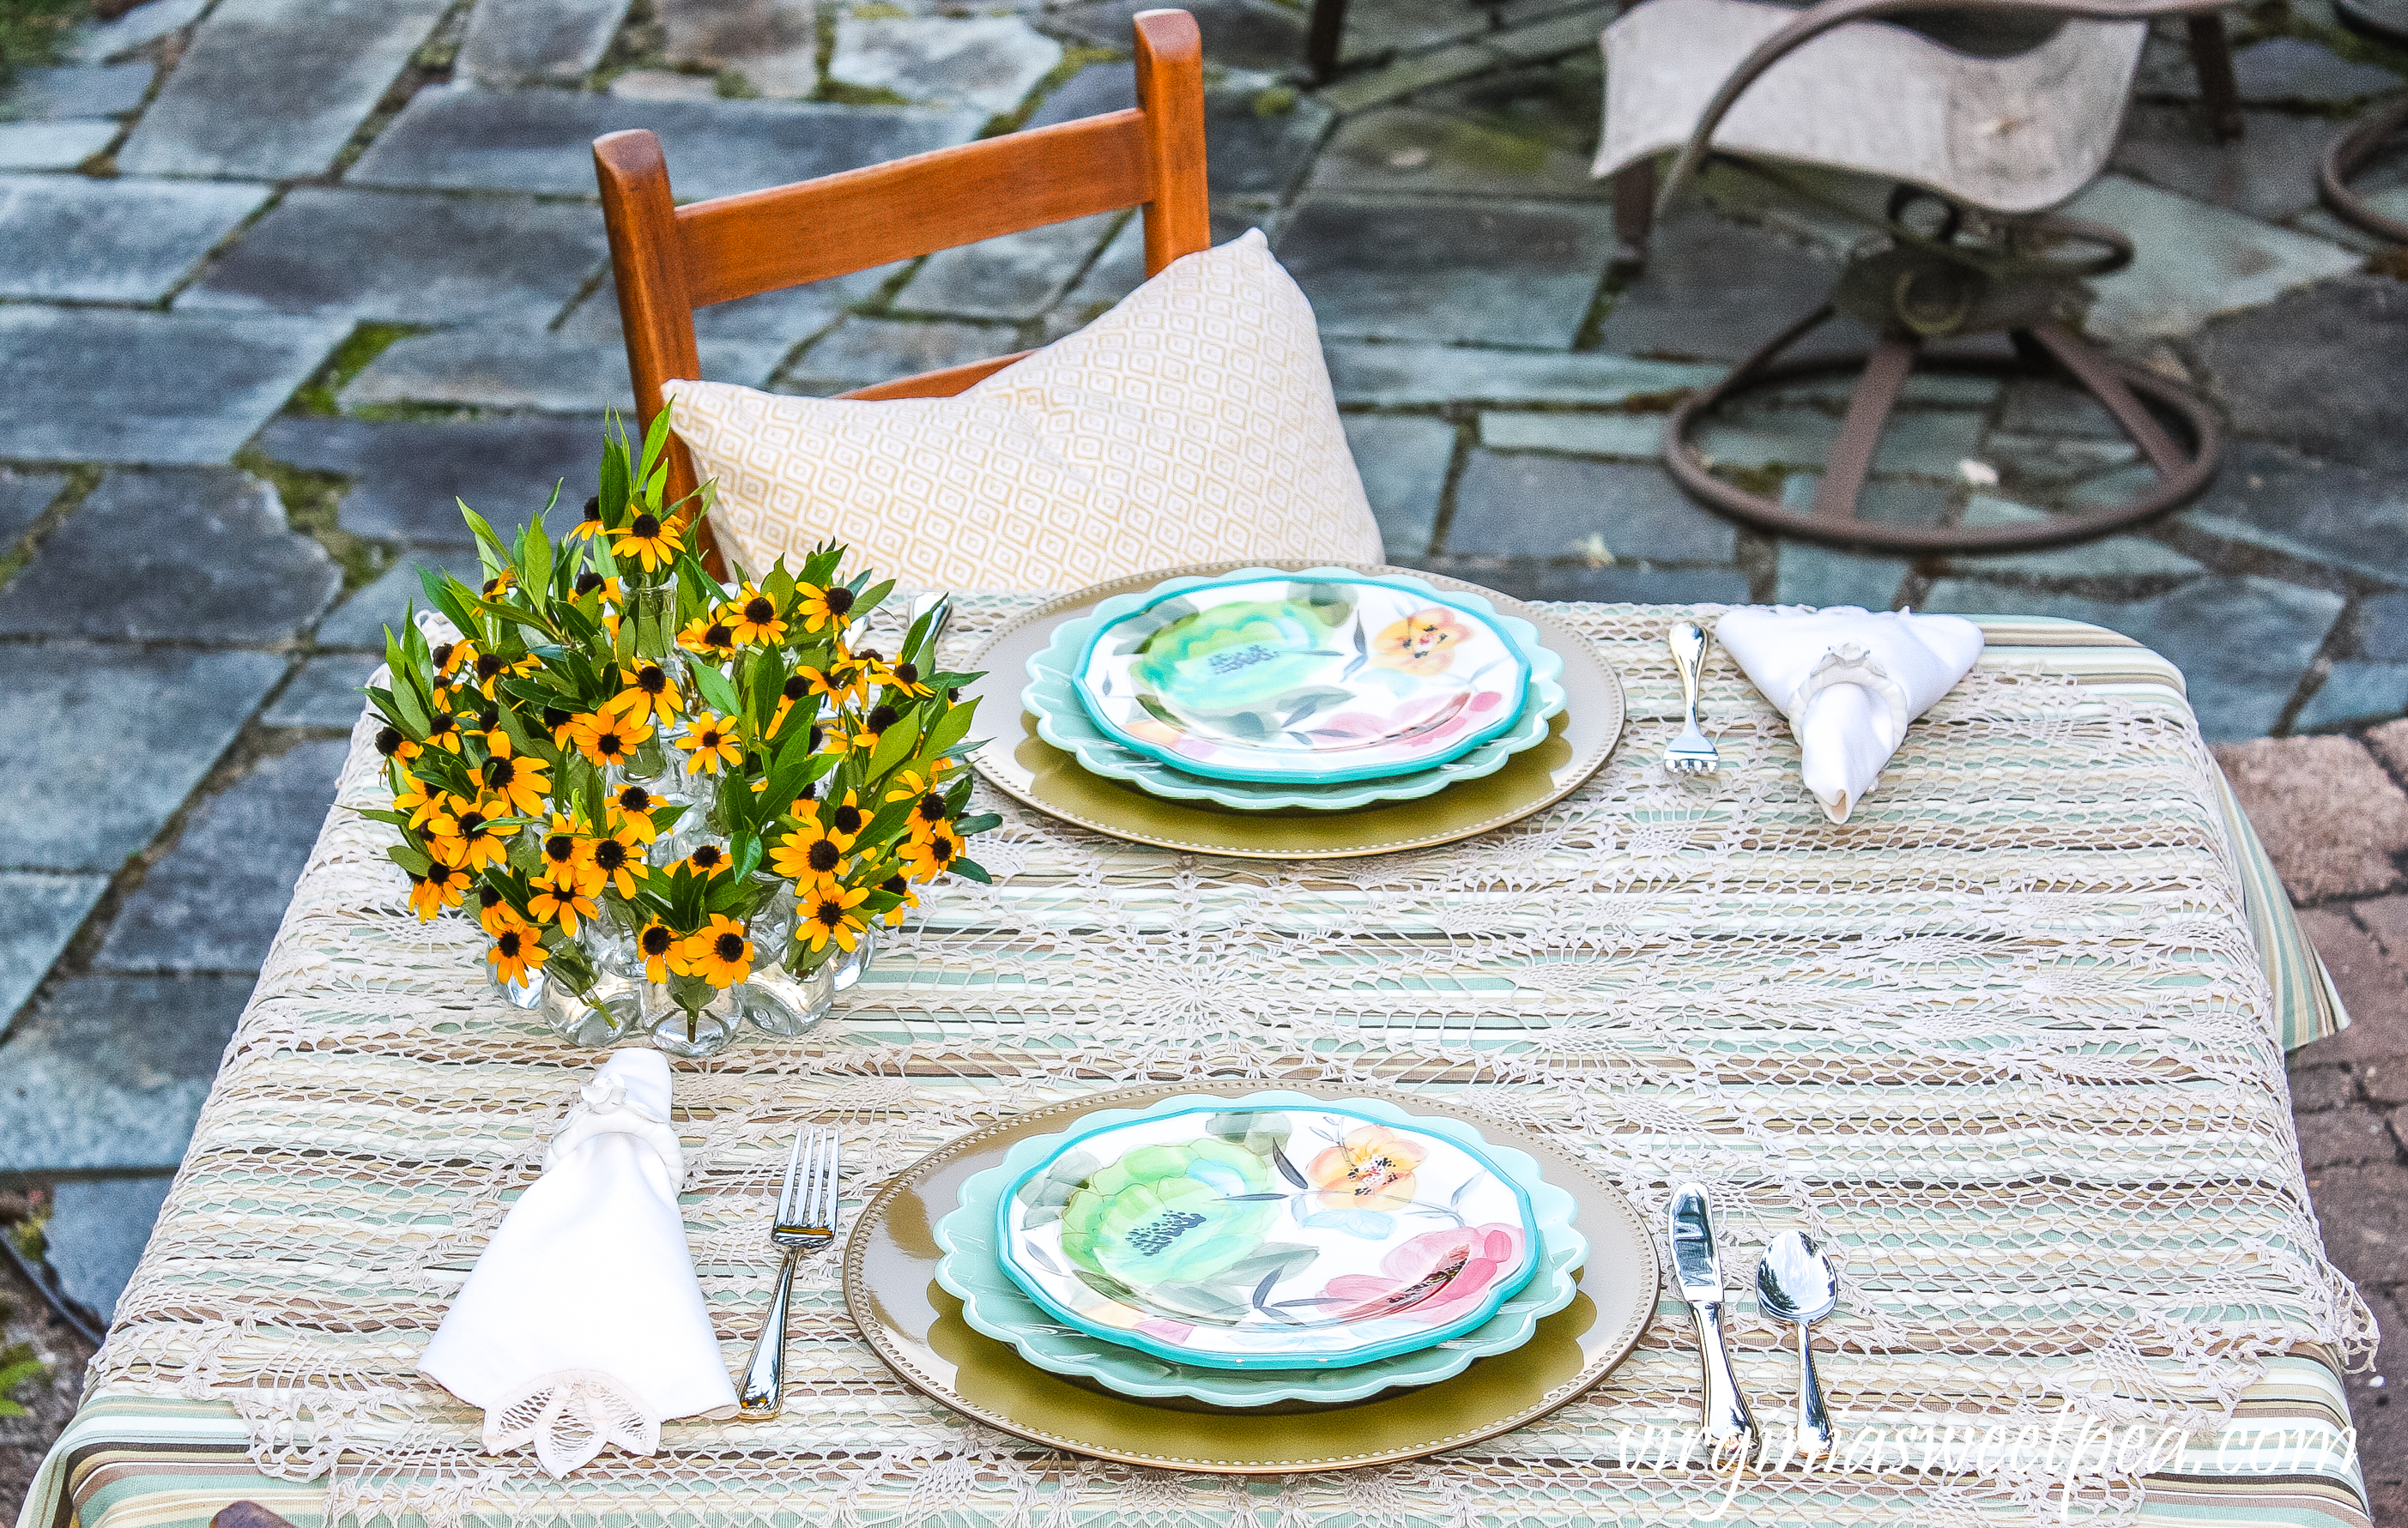 Summer tablescape set in a yard with Pioneer Woman dishes and a floral centerpiece.